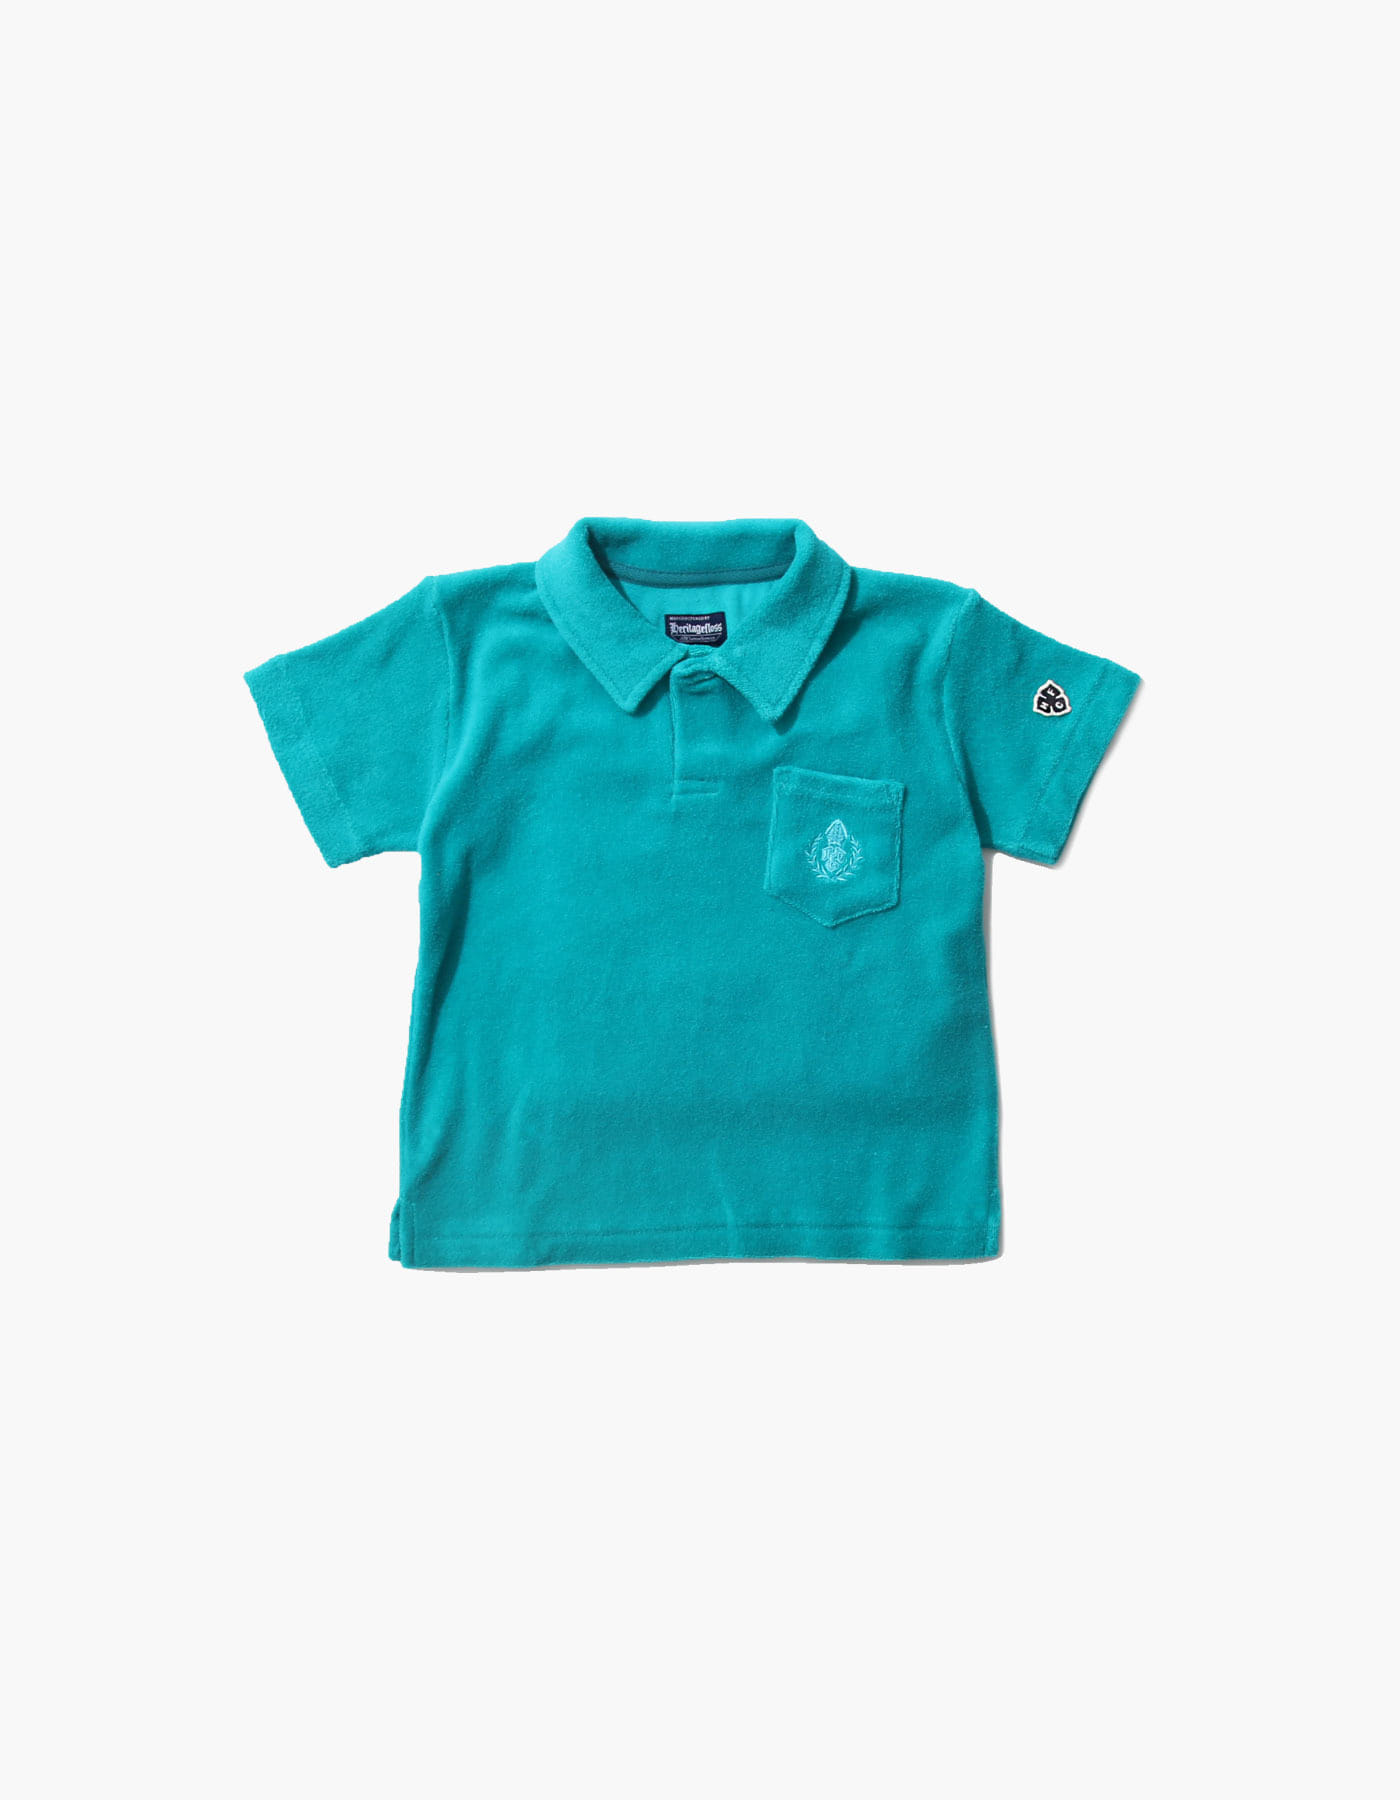 HFC CREST KIDS TOWEL POLO SHIRTS / BLUE GREEN